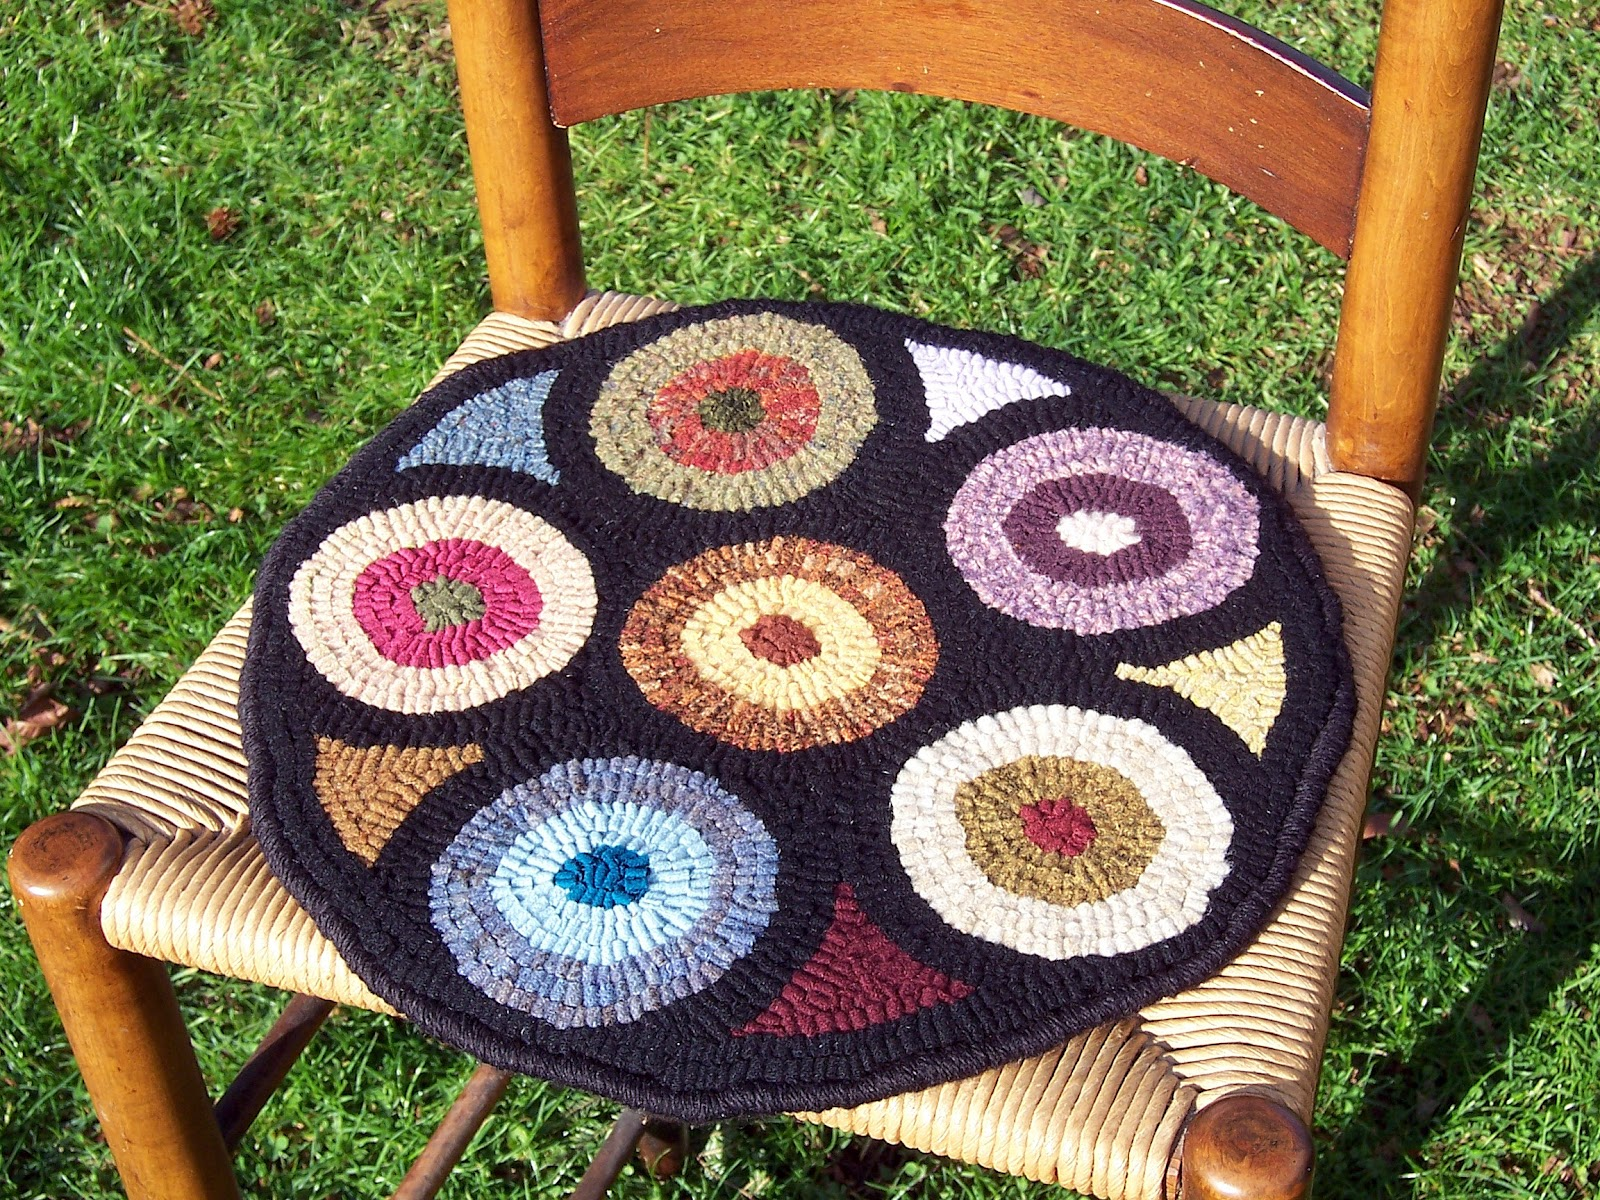 The Edge Of The Rug Has Been Finished With A Whipped Edge, Using Wool Yarn  Over A Cotton Cording To Provide An Attractive And Durable Edge. Hooked  Chair Pad ...